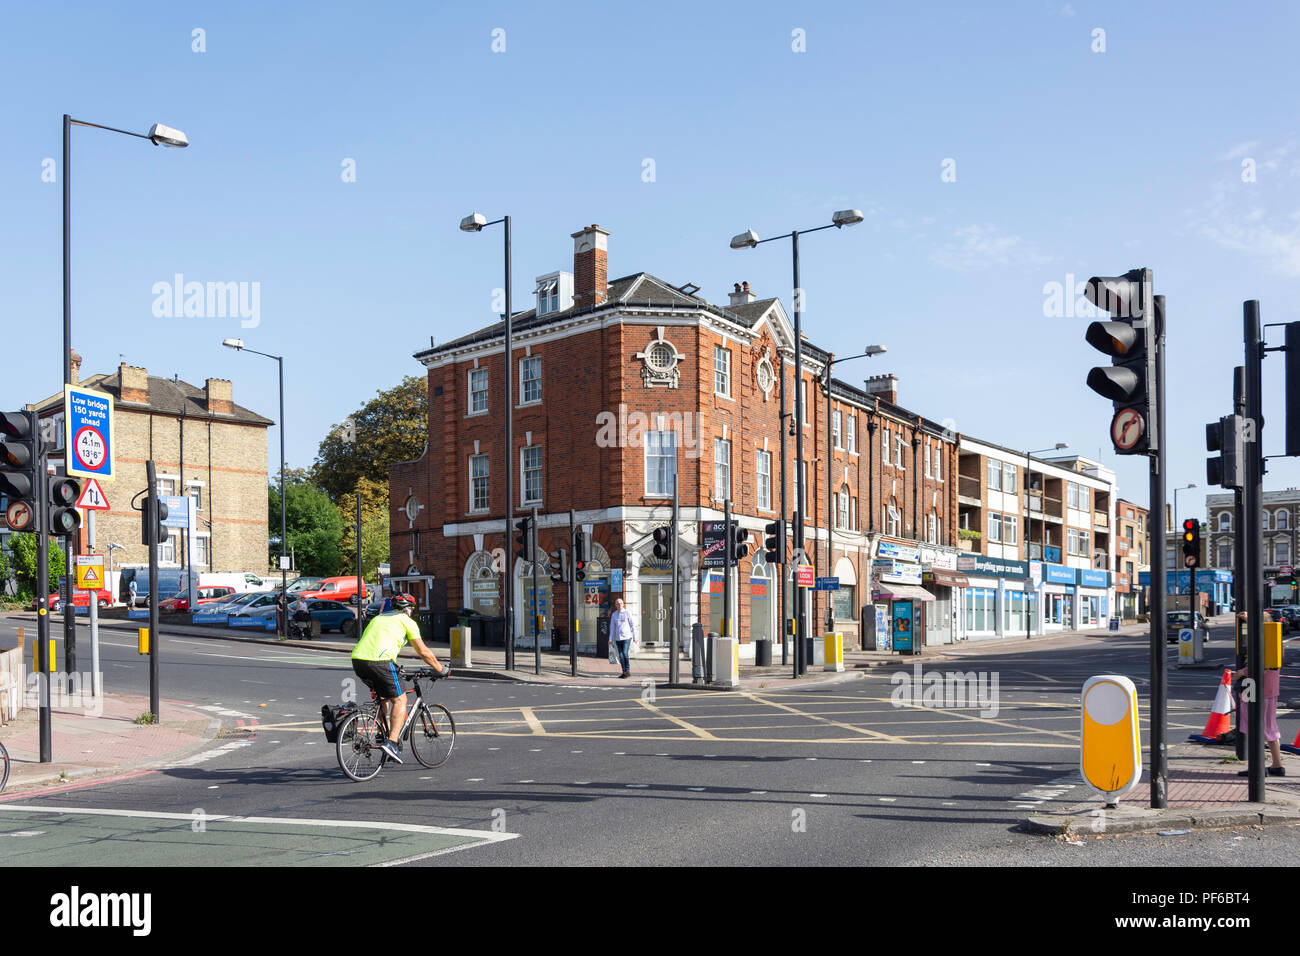 Junction of South Circular Road et route de Norwood, Tulse Hill, London Borough of Lambeth, Greater London, Angleterre, Royaume-Uni Banque D'Images